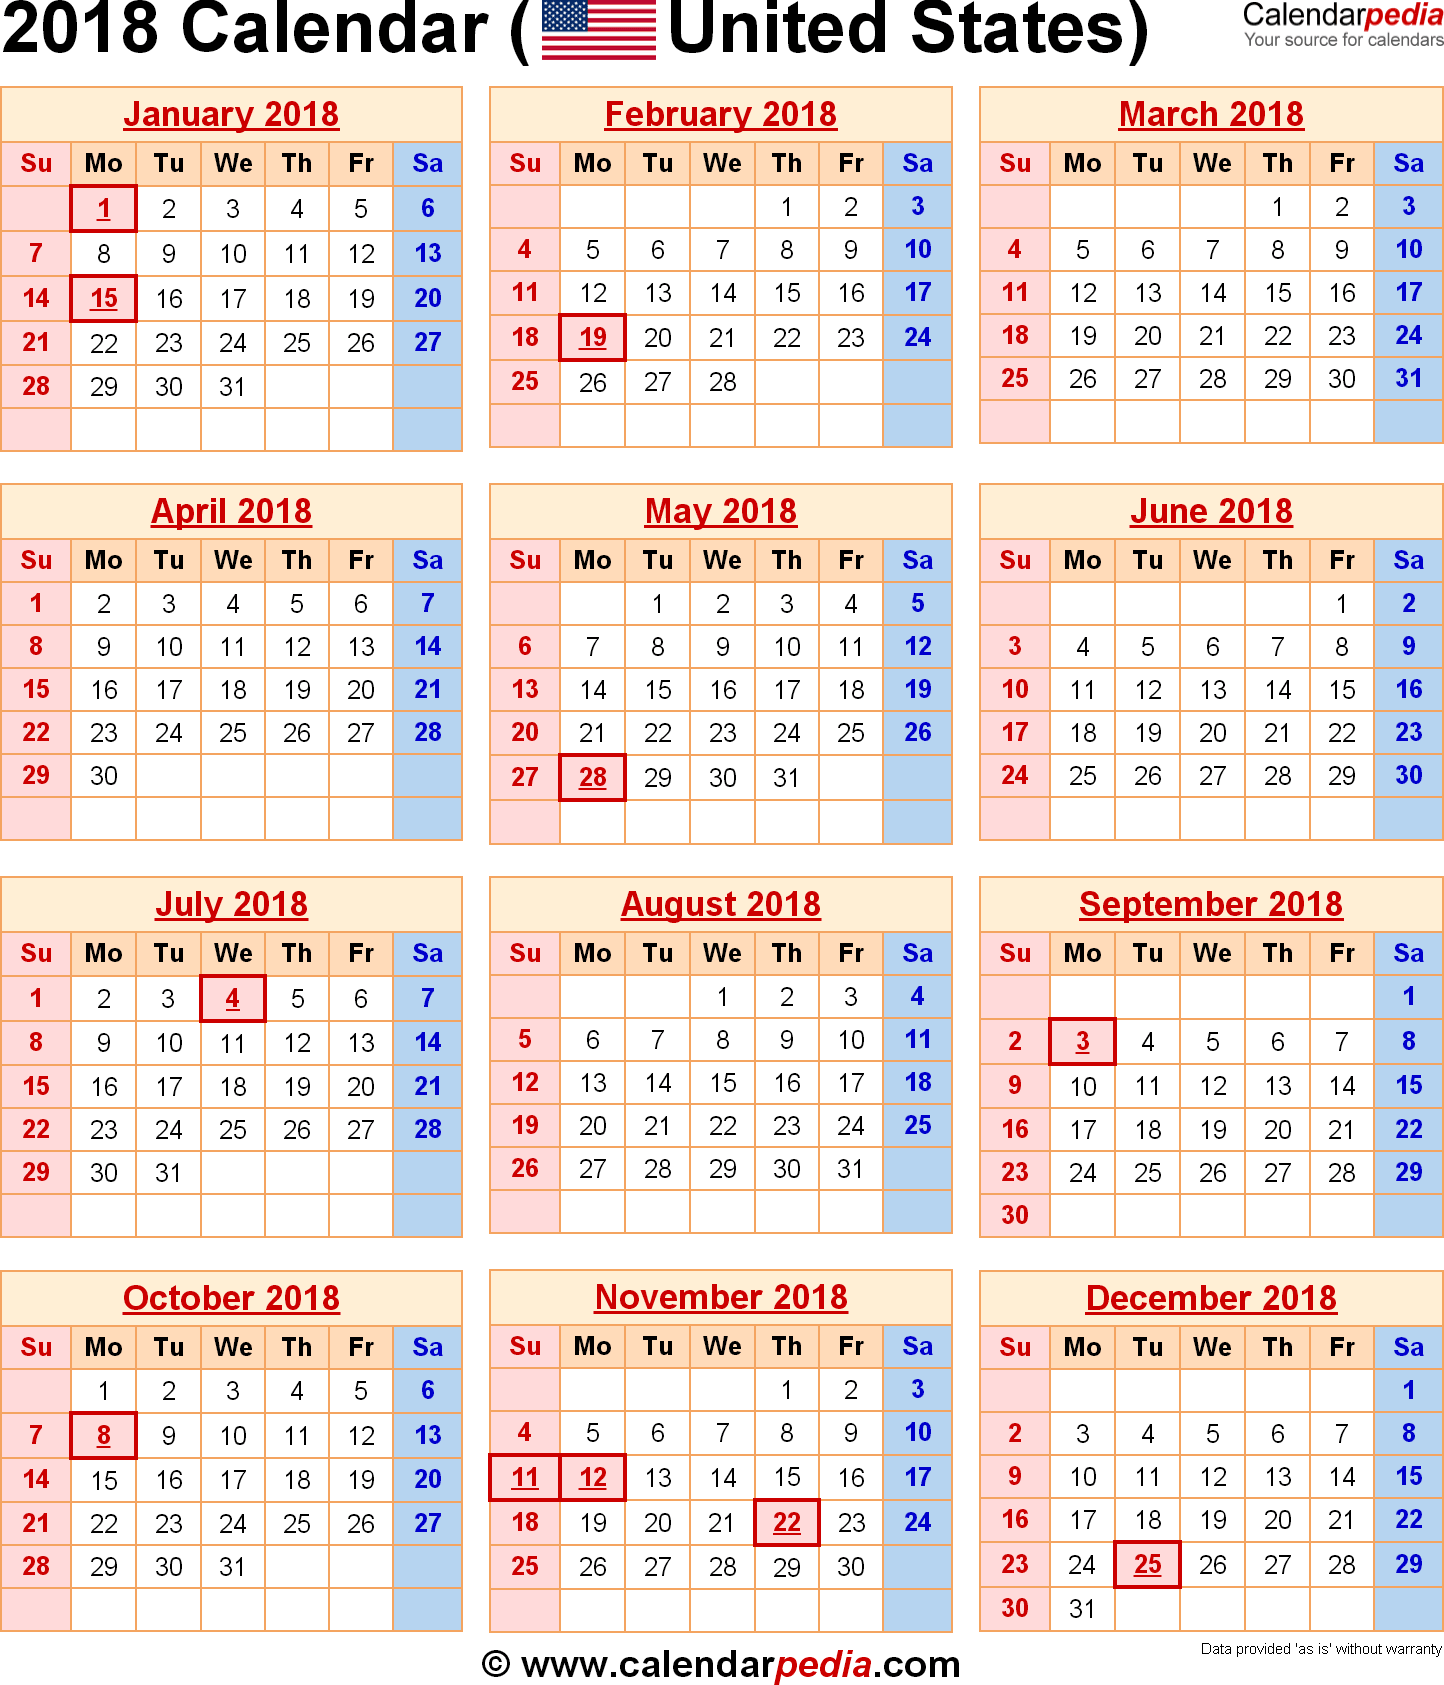 2018 Calendar with Federal Holidays US